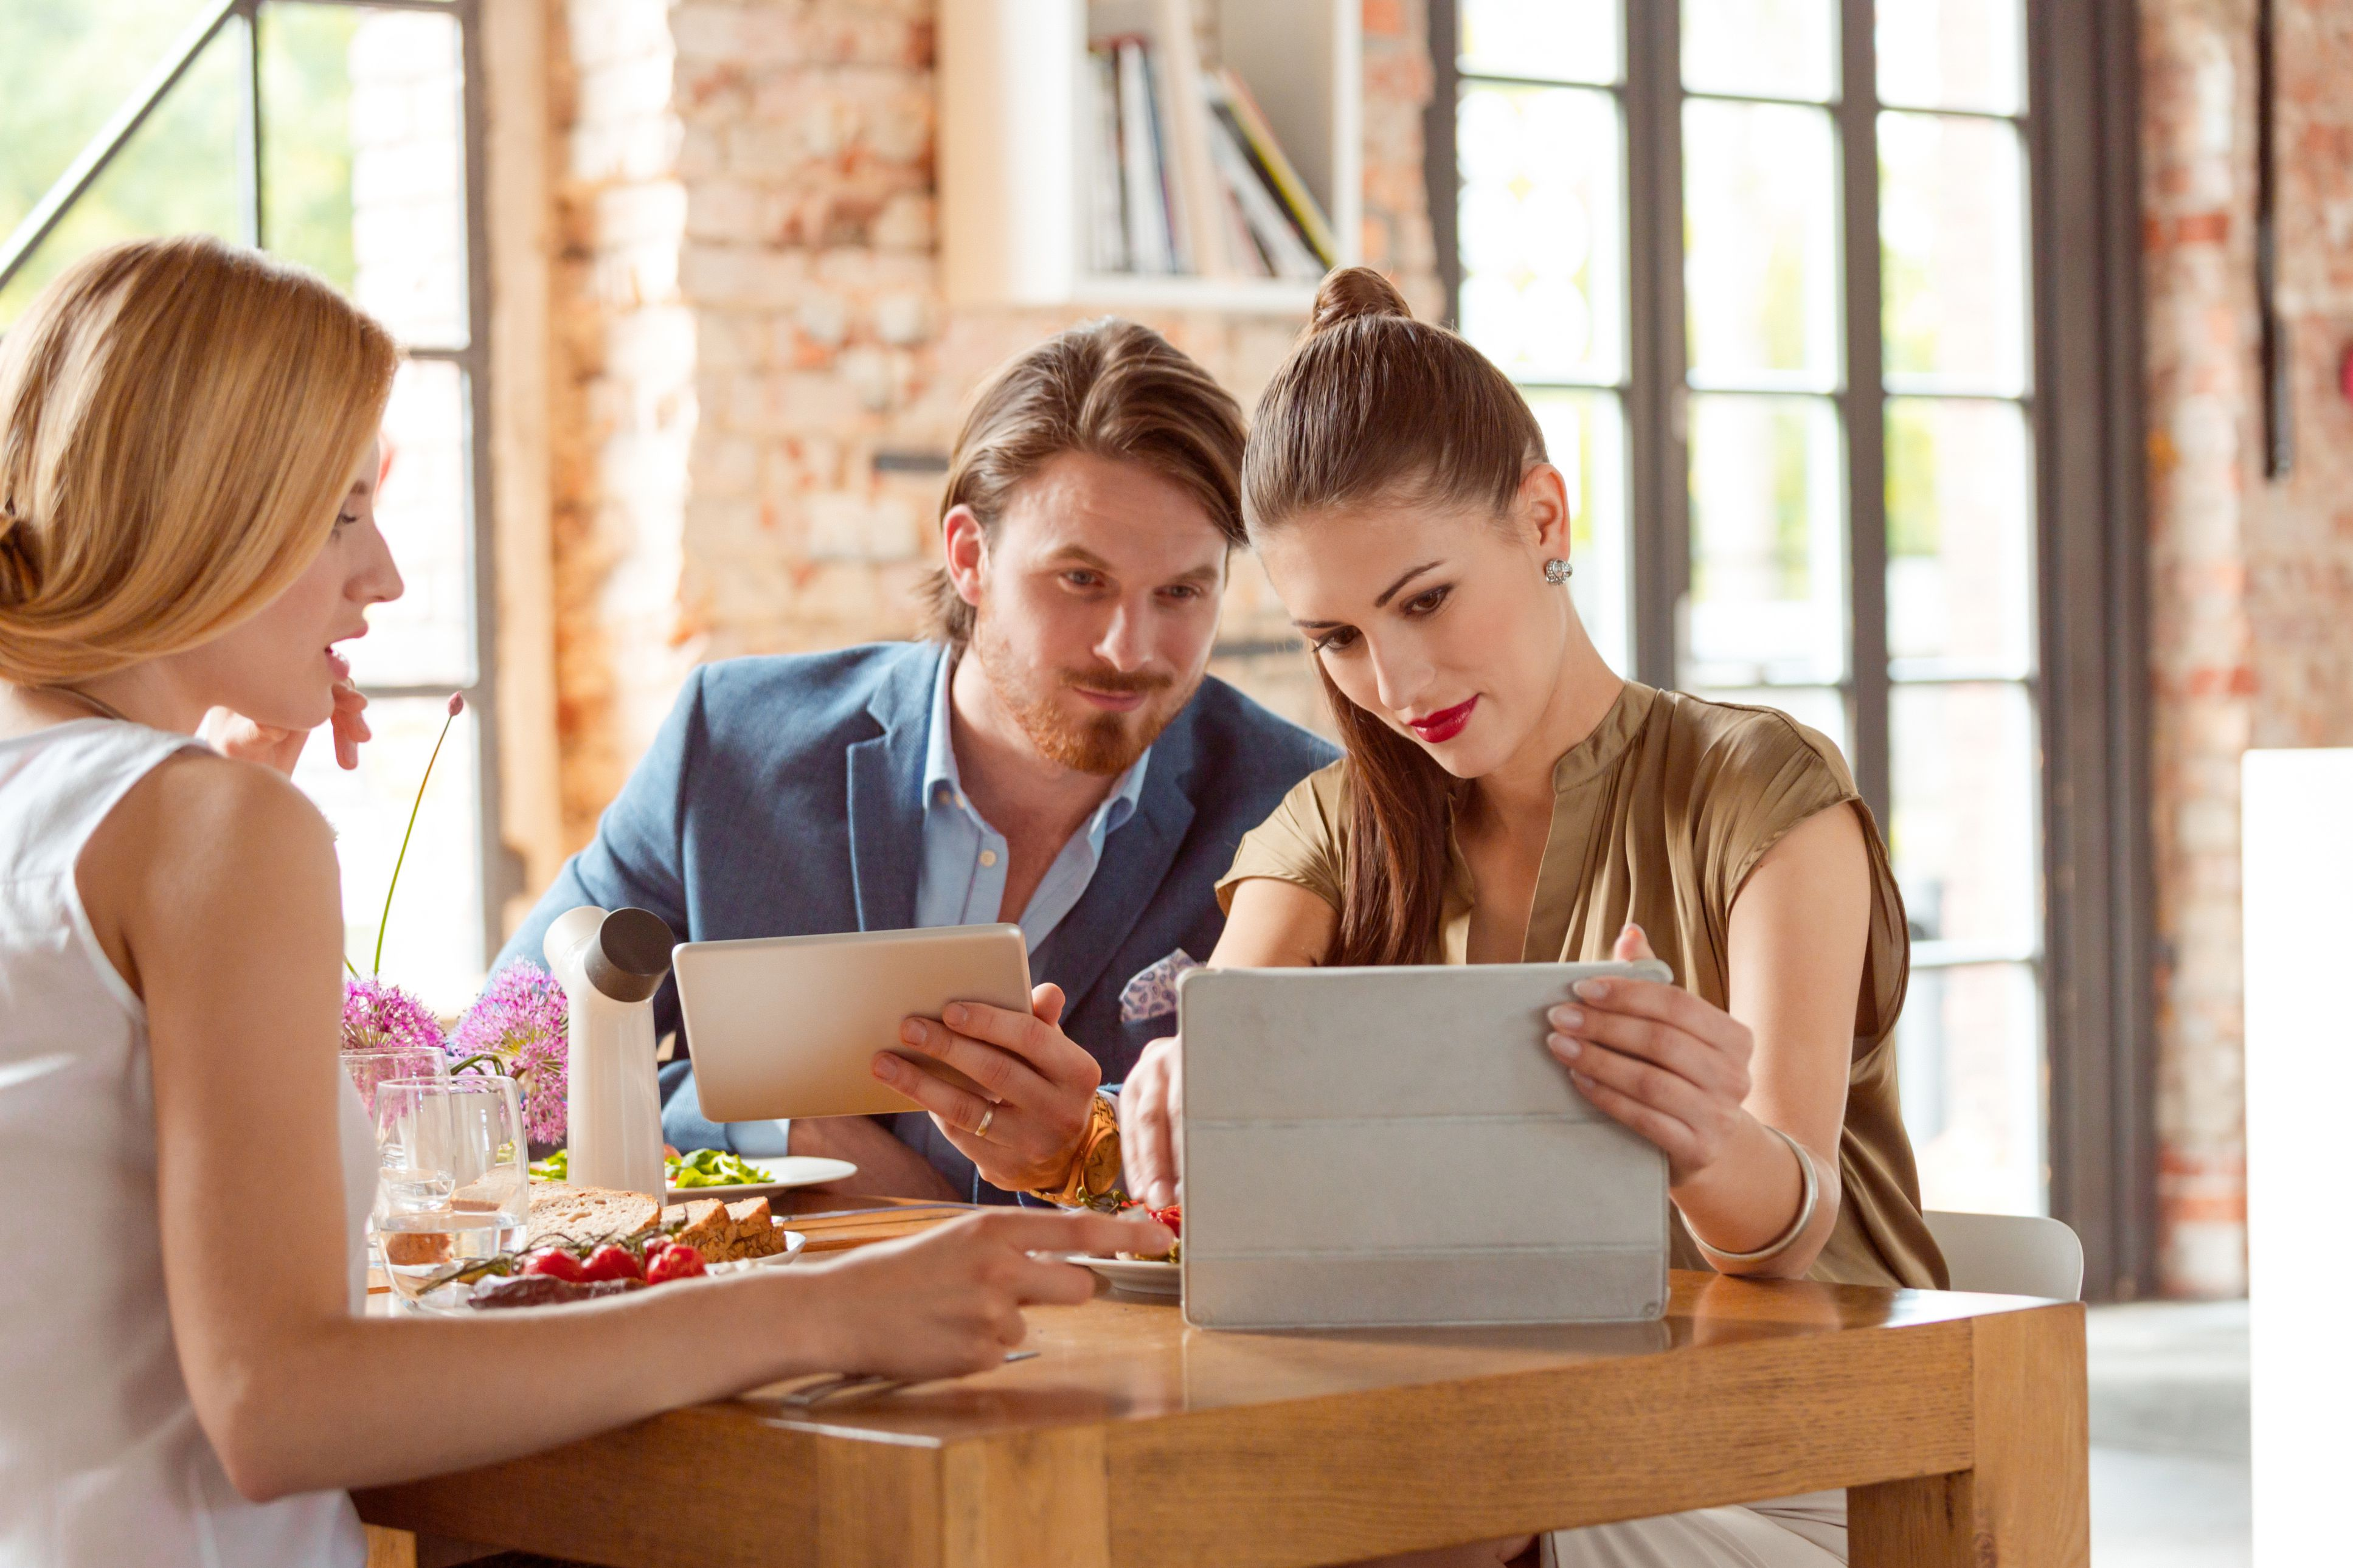 What Are Per Diem Rates And How Are They Set